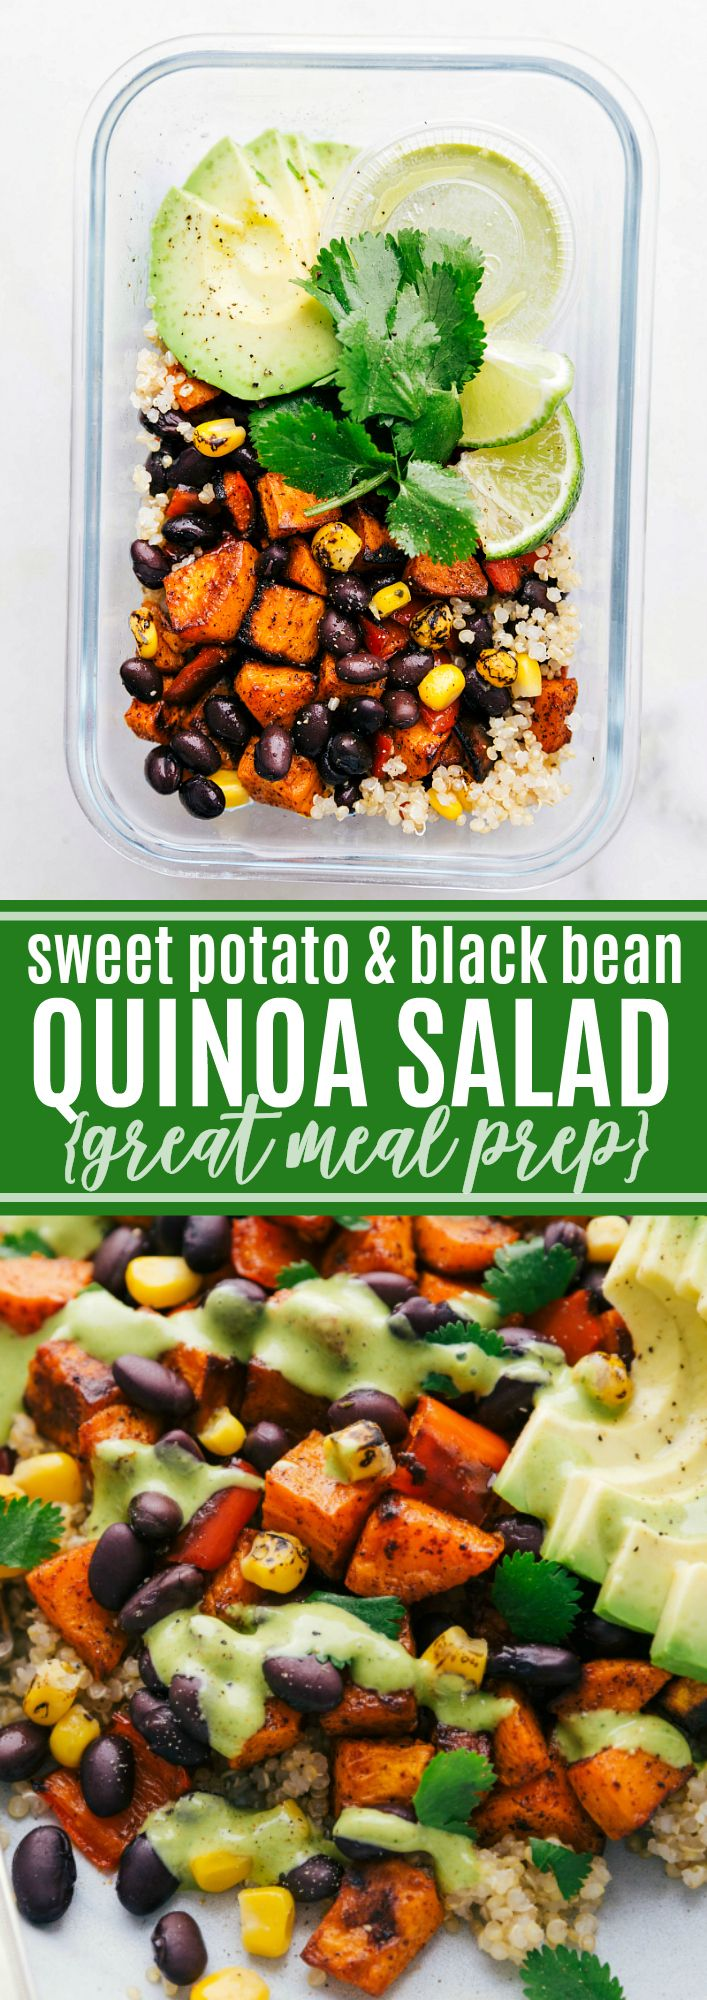 A quinoa black bean salad with roasted sweet potatoes, black beans, corn, red bell pepper, and a de